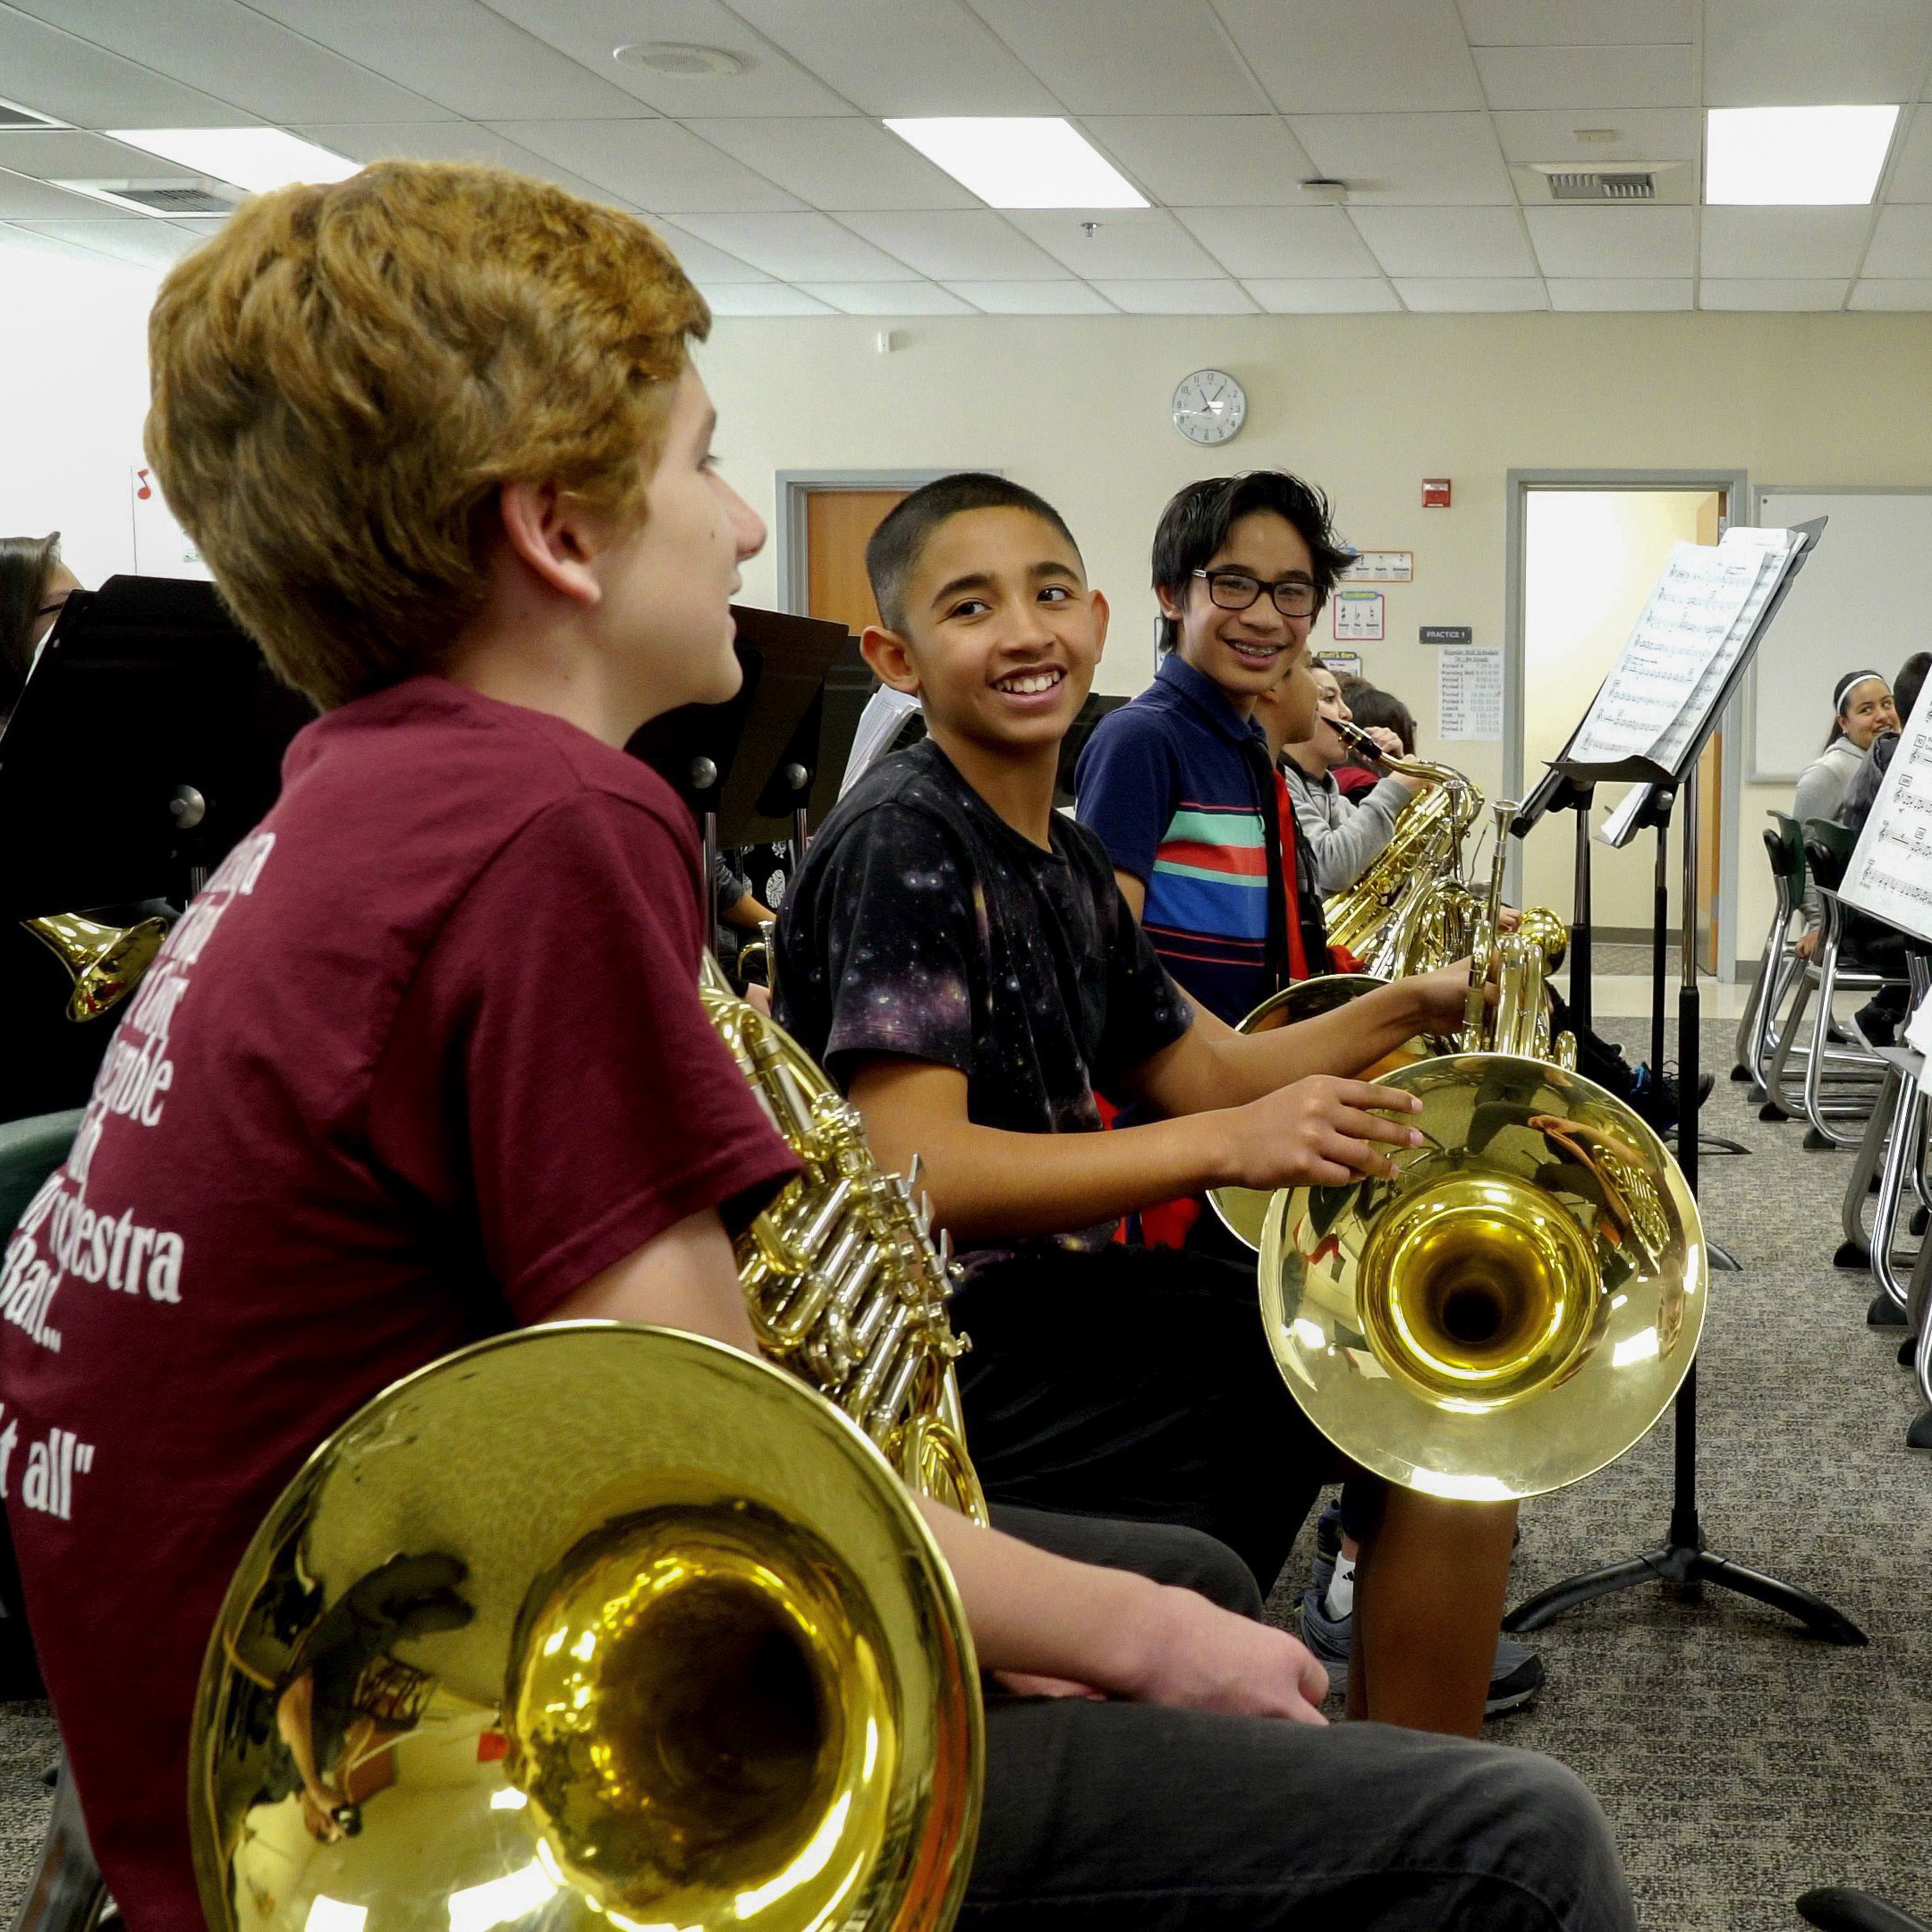 Middle school children playing instruments.